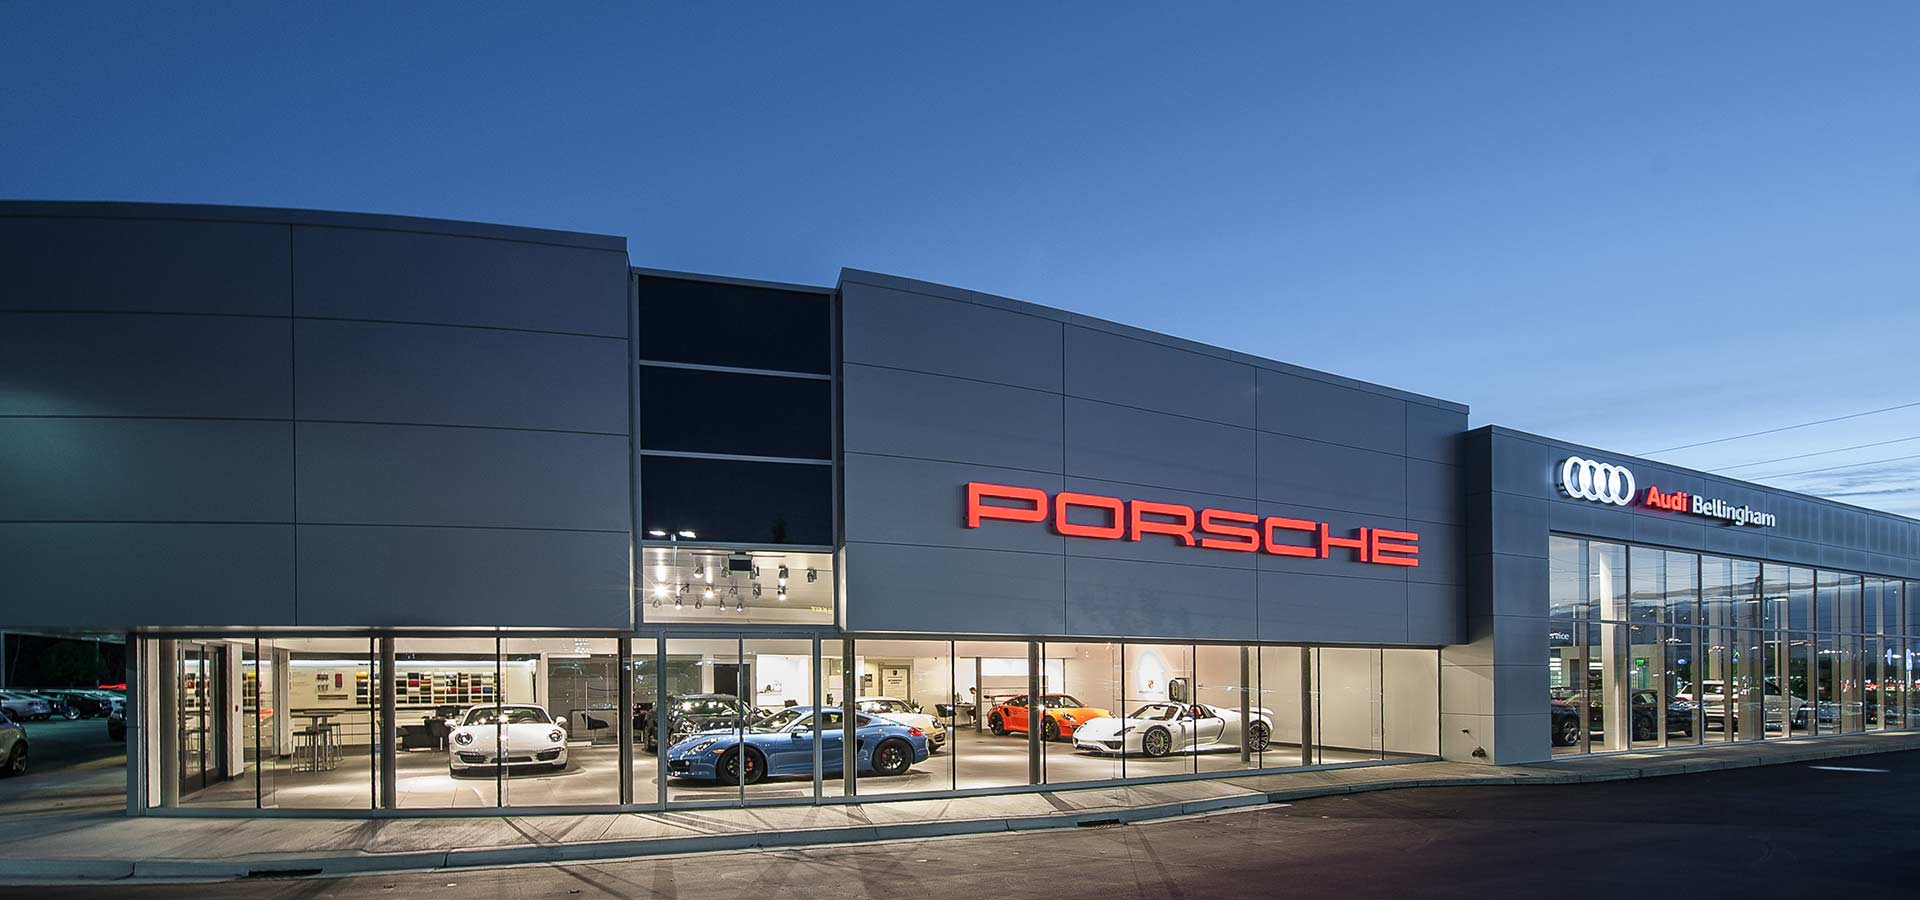 Bellingham Porsche & Audi Dealership